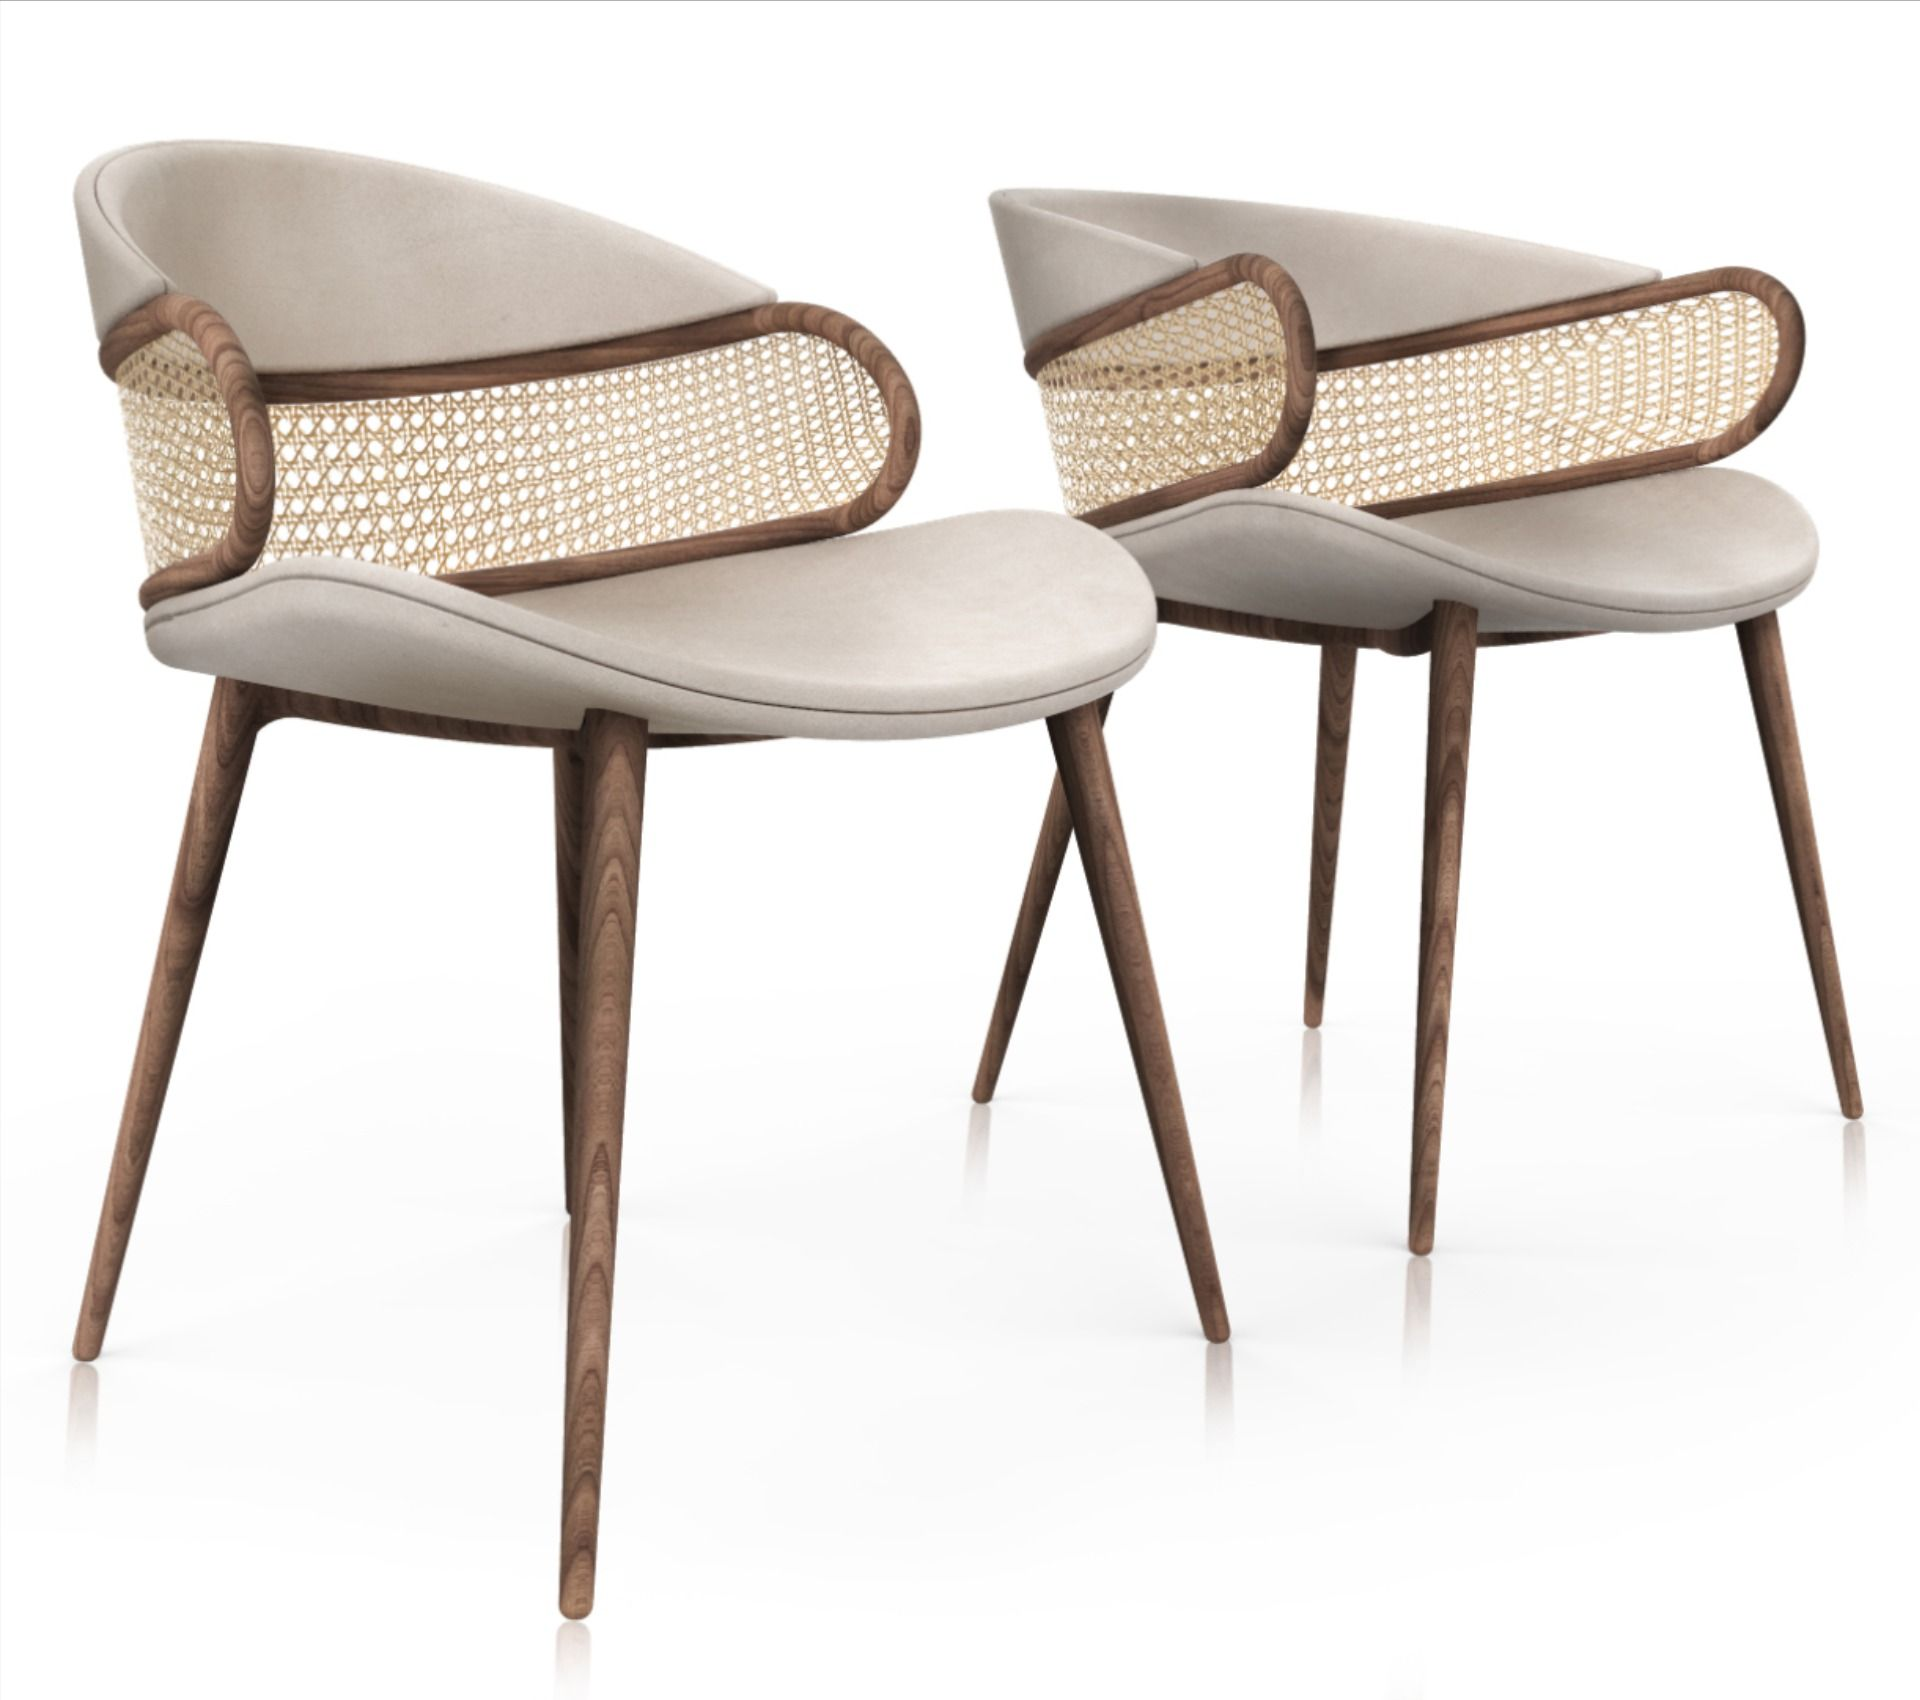 10 Modern Chairs is the ultimate source for dining chairs and armchairs inspiration. Here are Chairs with a Unique Design: Stunning & contemporary Ideas for your Home Décor, designed by Alma de Luce. #AlmadeLuce #chairideas #modernchairs #luxuryfurniture #uniquedesign #modernfurniture #Diningarmchair  #woodchair #metallicchair # #luxurybrands #Inspirationalfurniture metallictrend #woodchairtrend #upholsteredchair #homedecorideas #livingroom #diningroom #luxurychairs #exclusivedesign #designchair